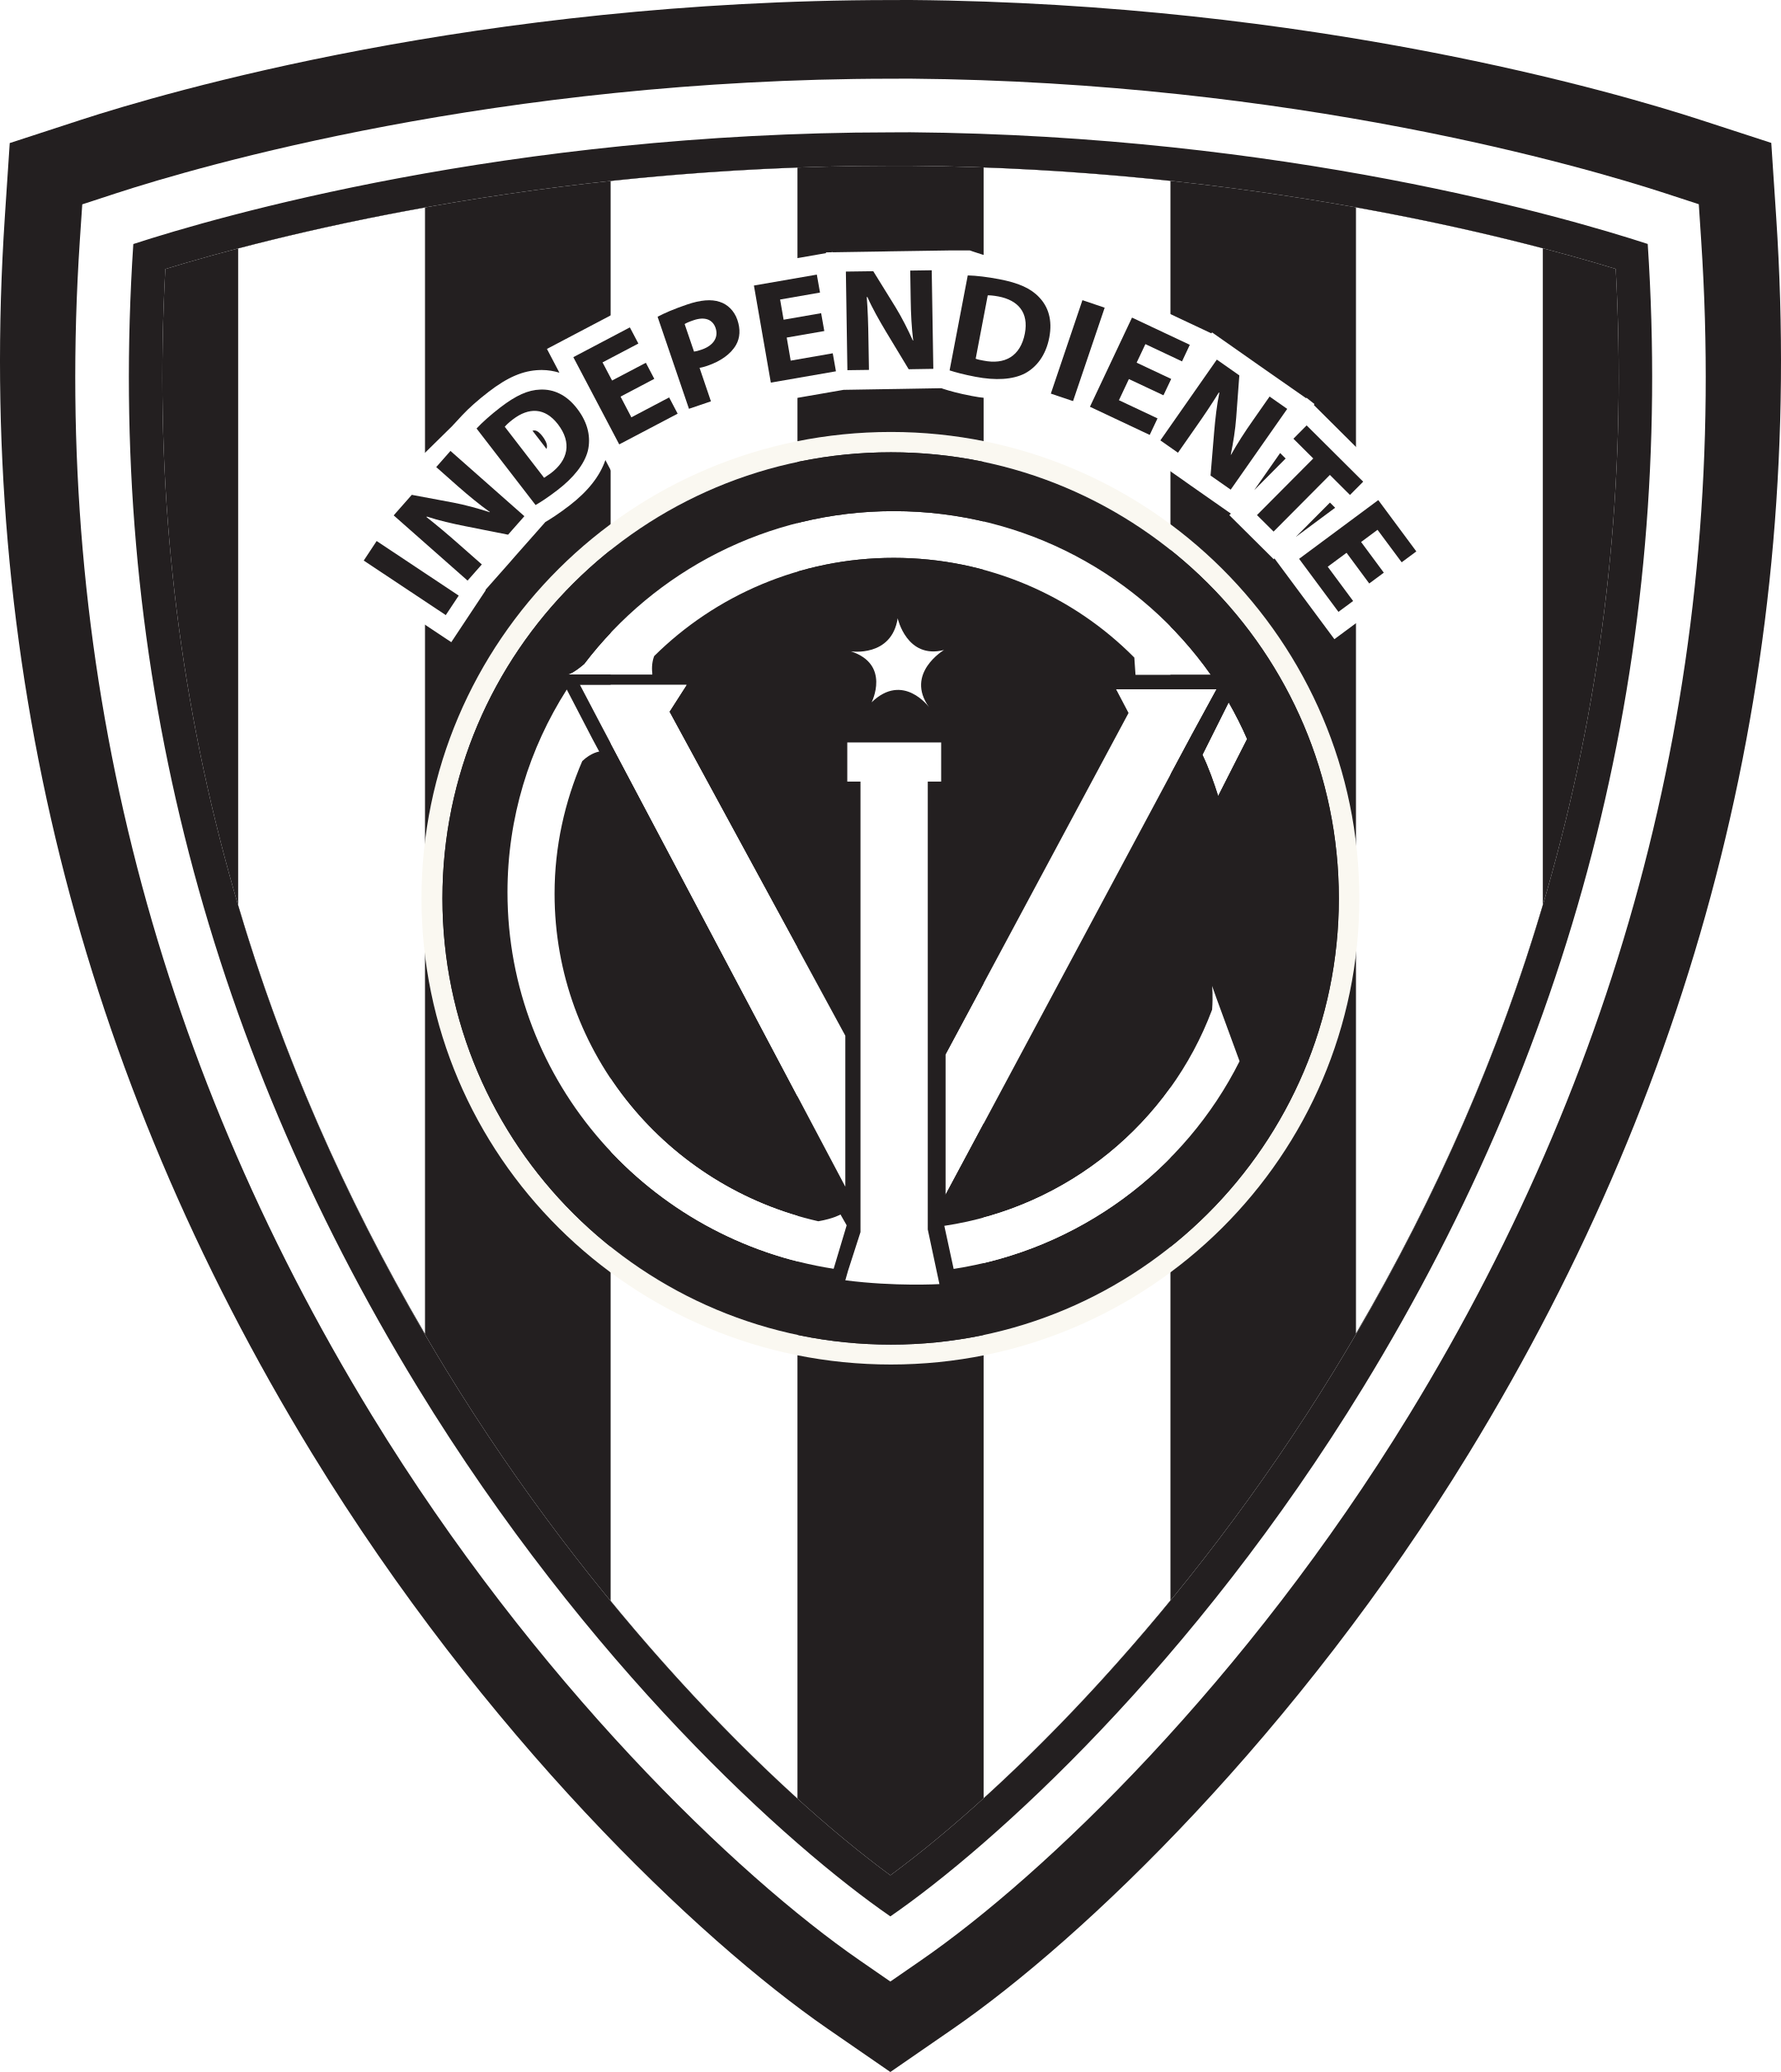 independiente del valle logo 1 - Independiente del Valle Logo – Escudo